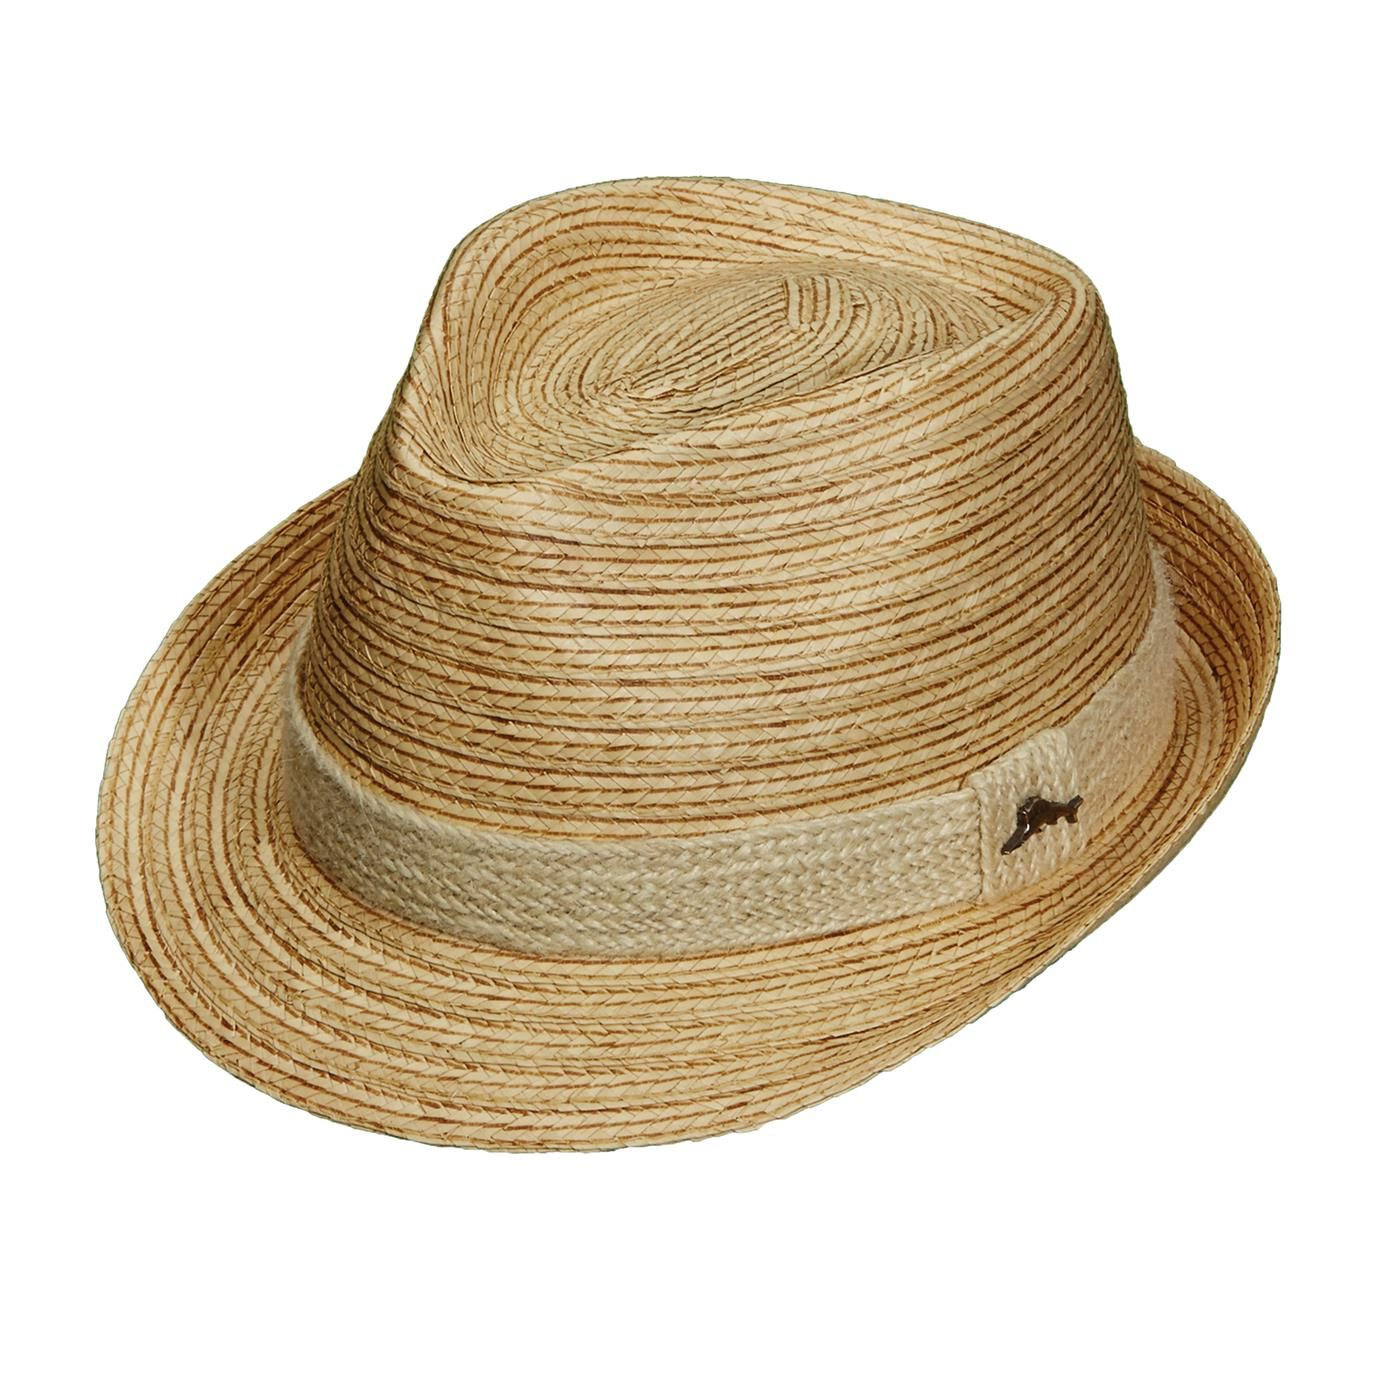 If you re looking for a tropical fedora for your beach vacation ... 13b1ffca2f6